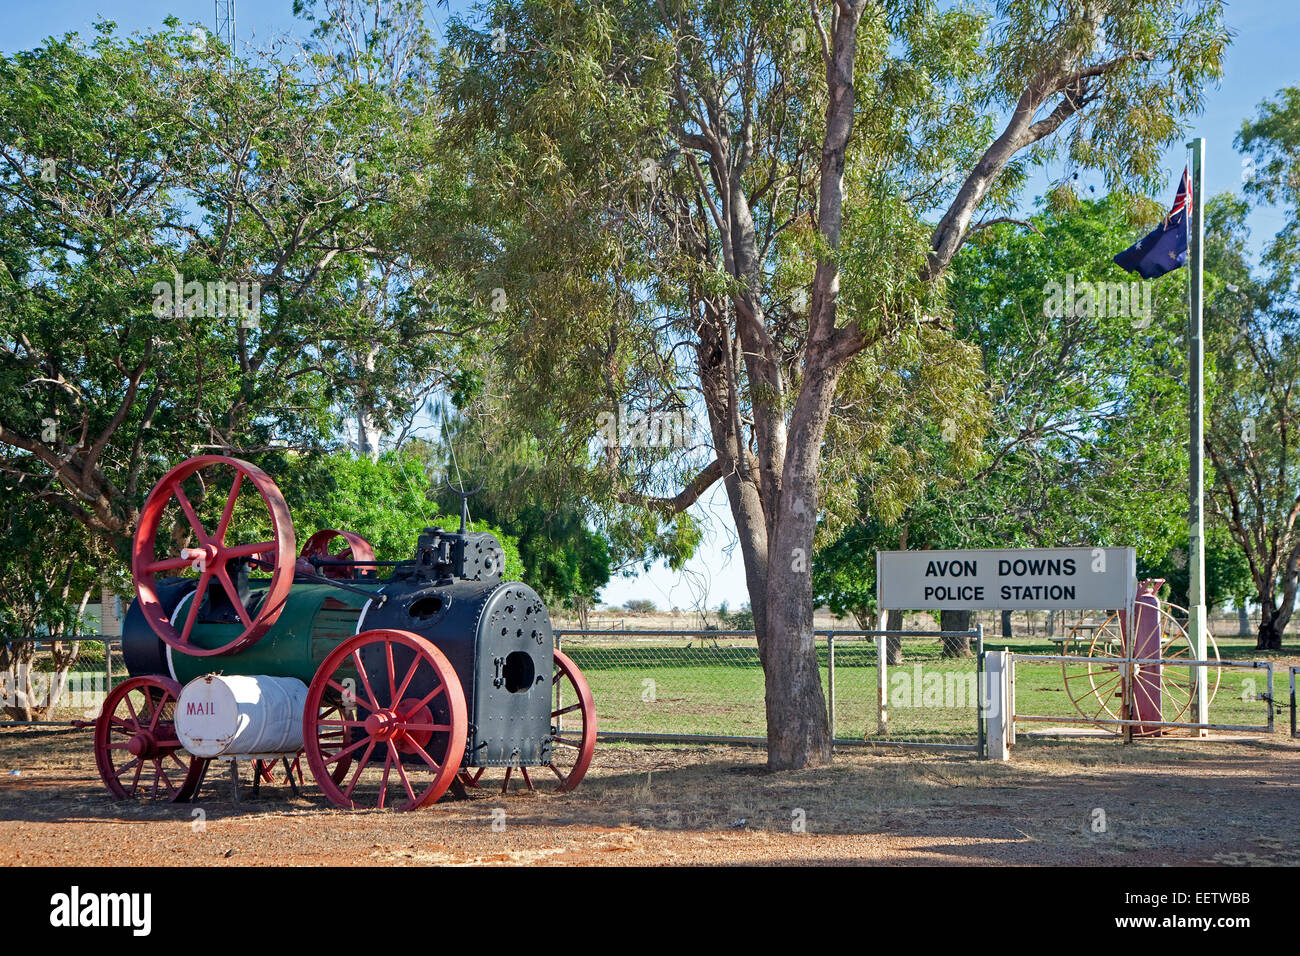 Vintage steam traction engine at Avon Downs police station along the Barkly Highway, Northern Territory, Australia - Stock Image